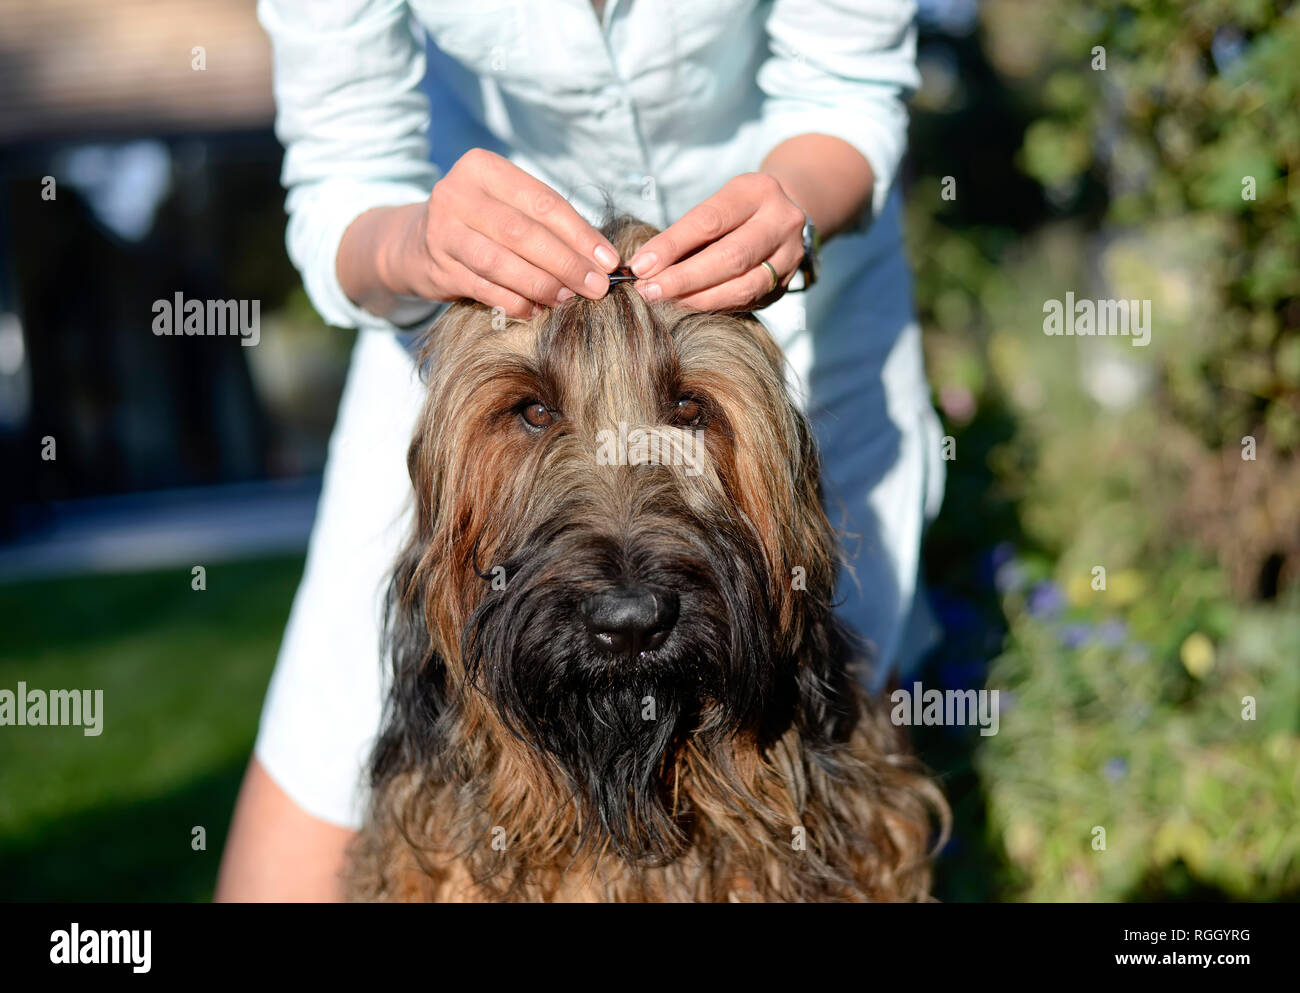 Woman's hands fixing hair clip on dog's head - Stock Image